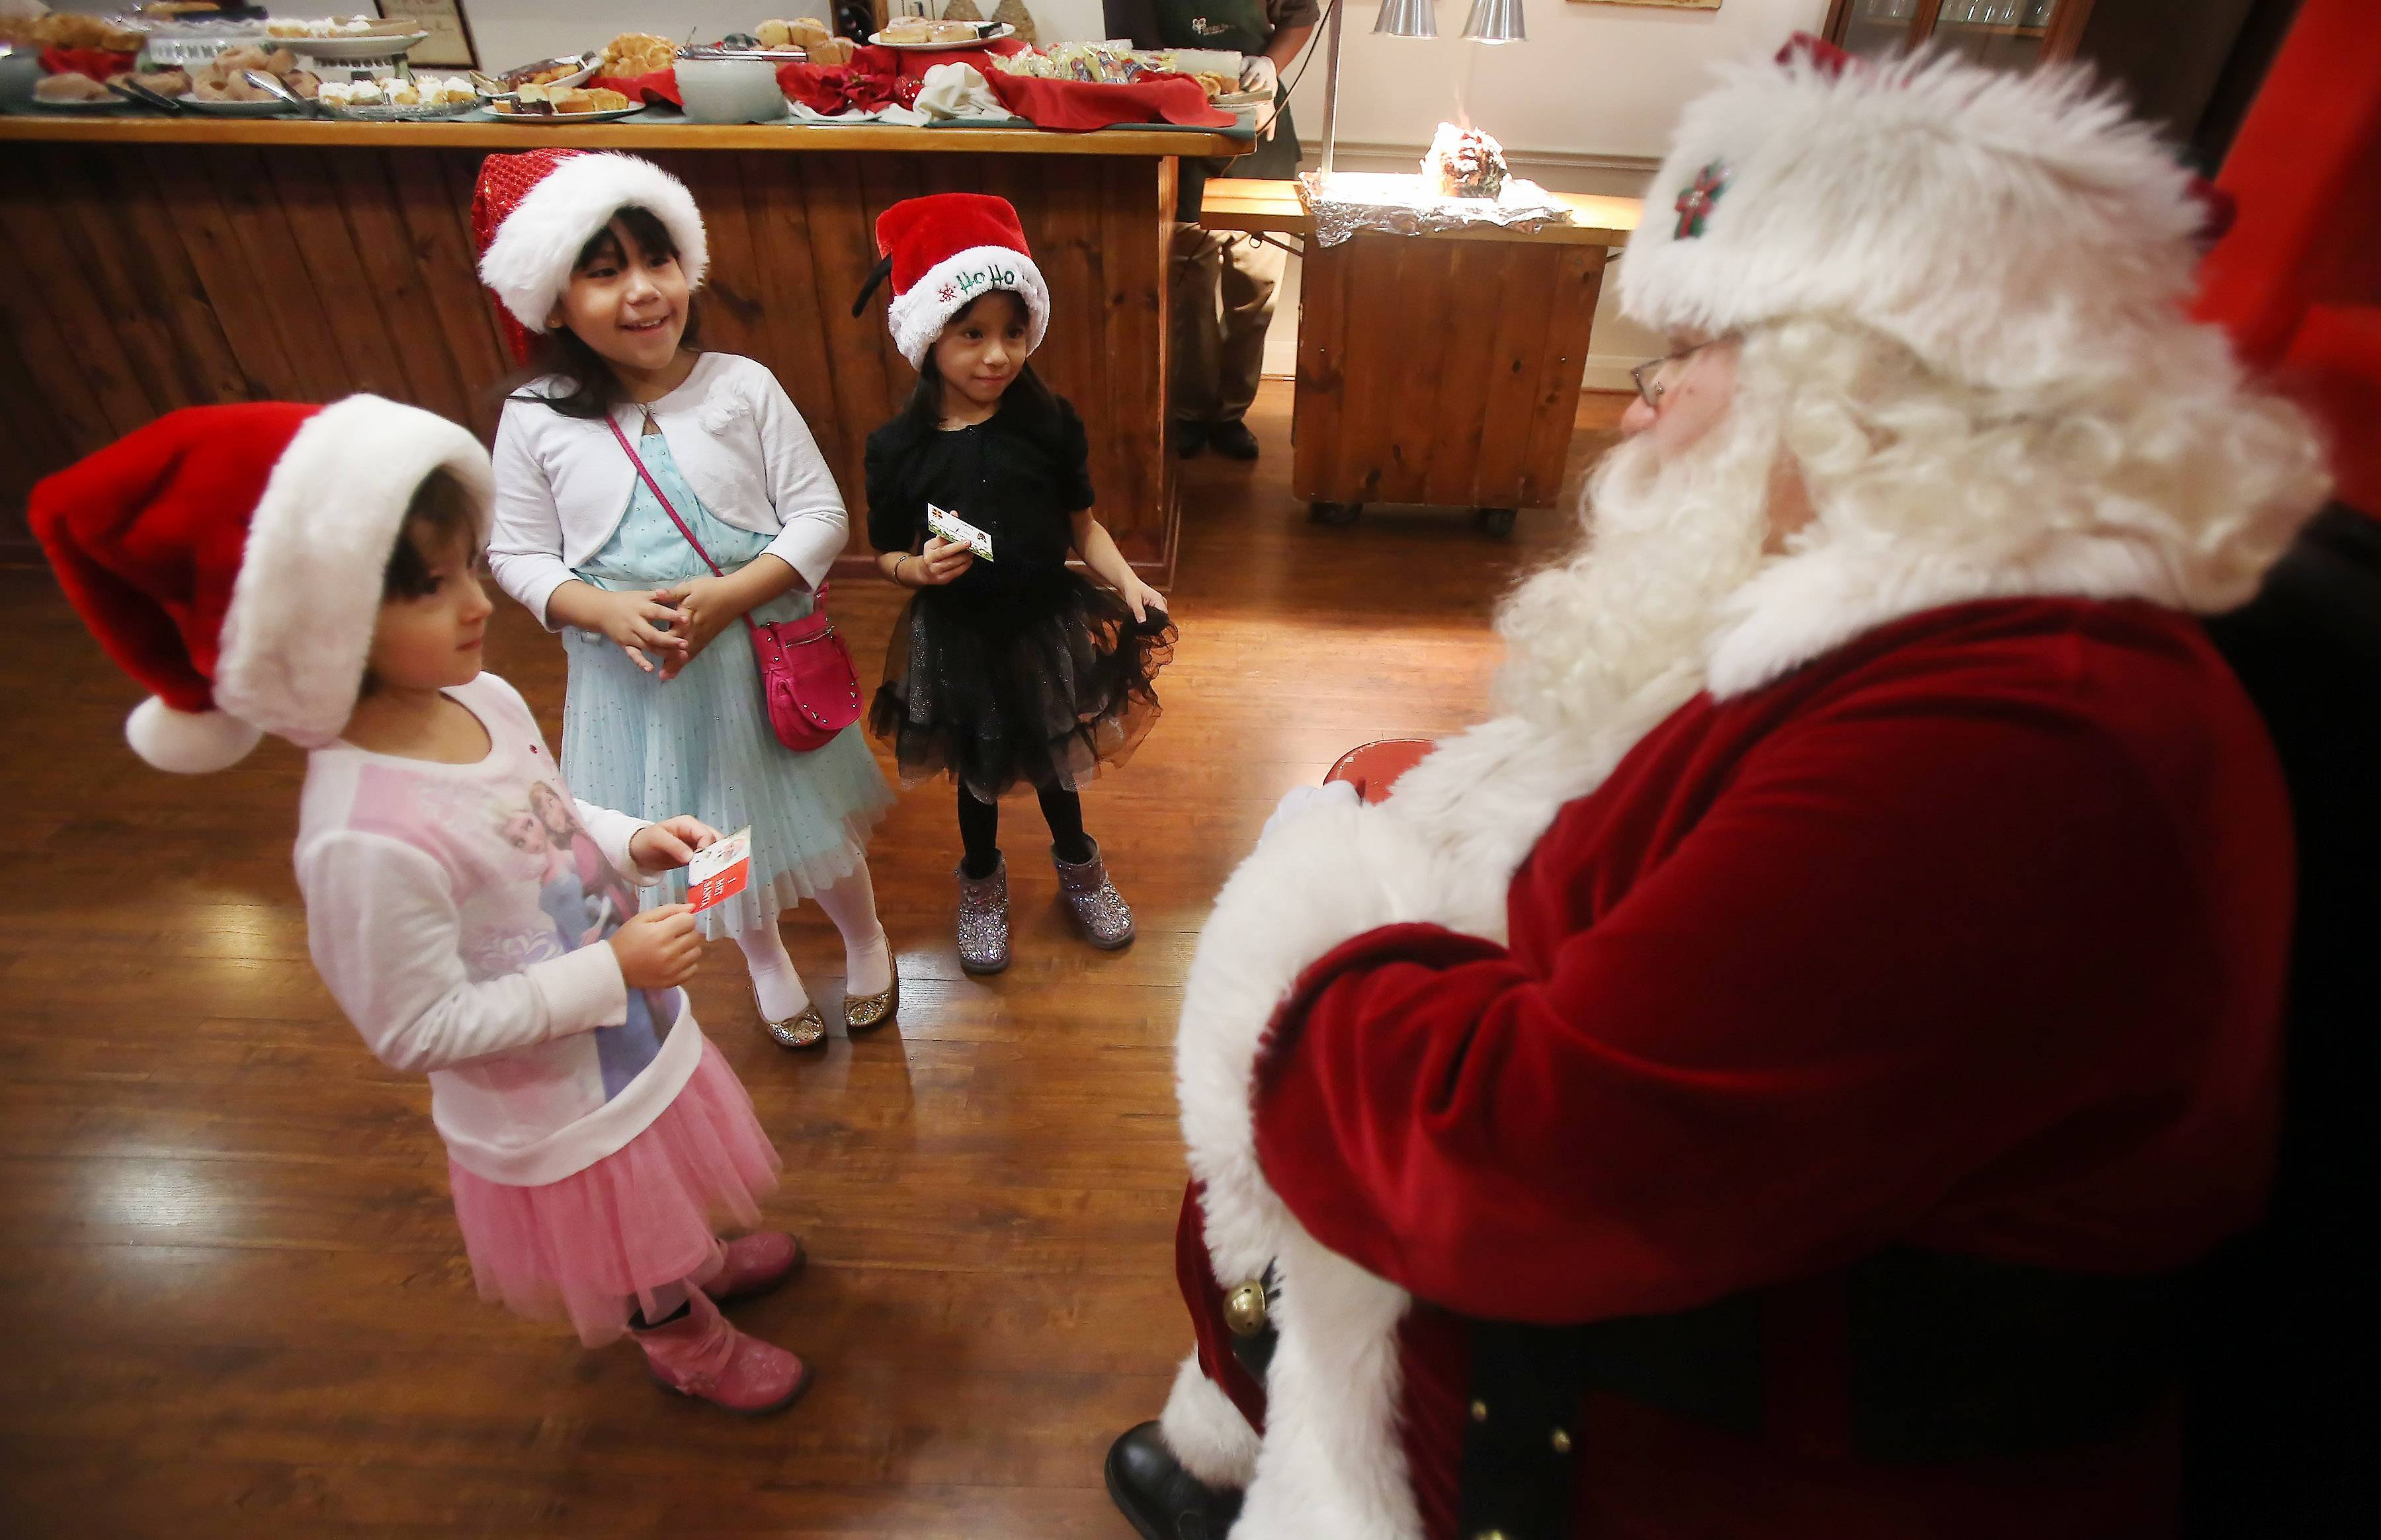 Maria Ritacca, 5, left, Maggie Campos, 6, and Ashley Mora, 6, all of Highwood, talk with Santa Claus during Breakfast With Santa Sunday at Lambs Farm in Libertyville. Families enjoyed a buffet brunch and children then had a chance to visit with Santa Claus.